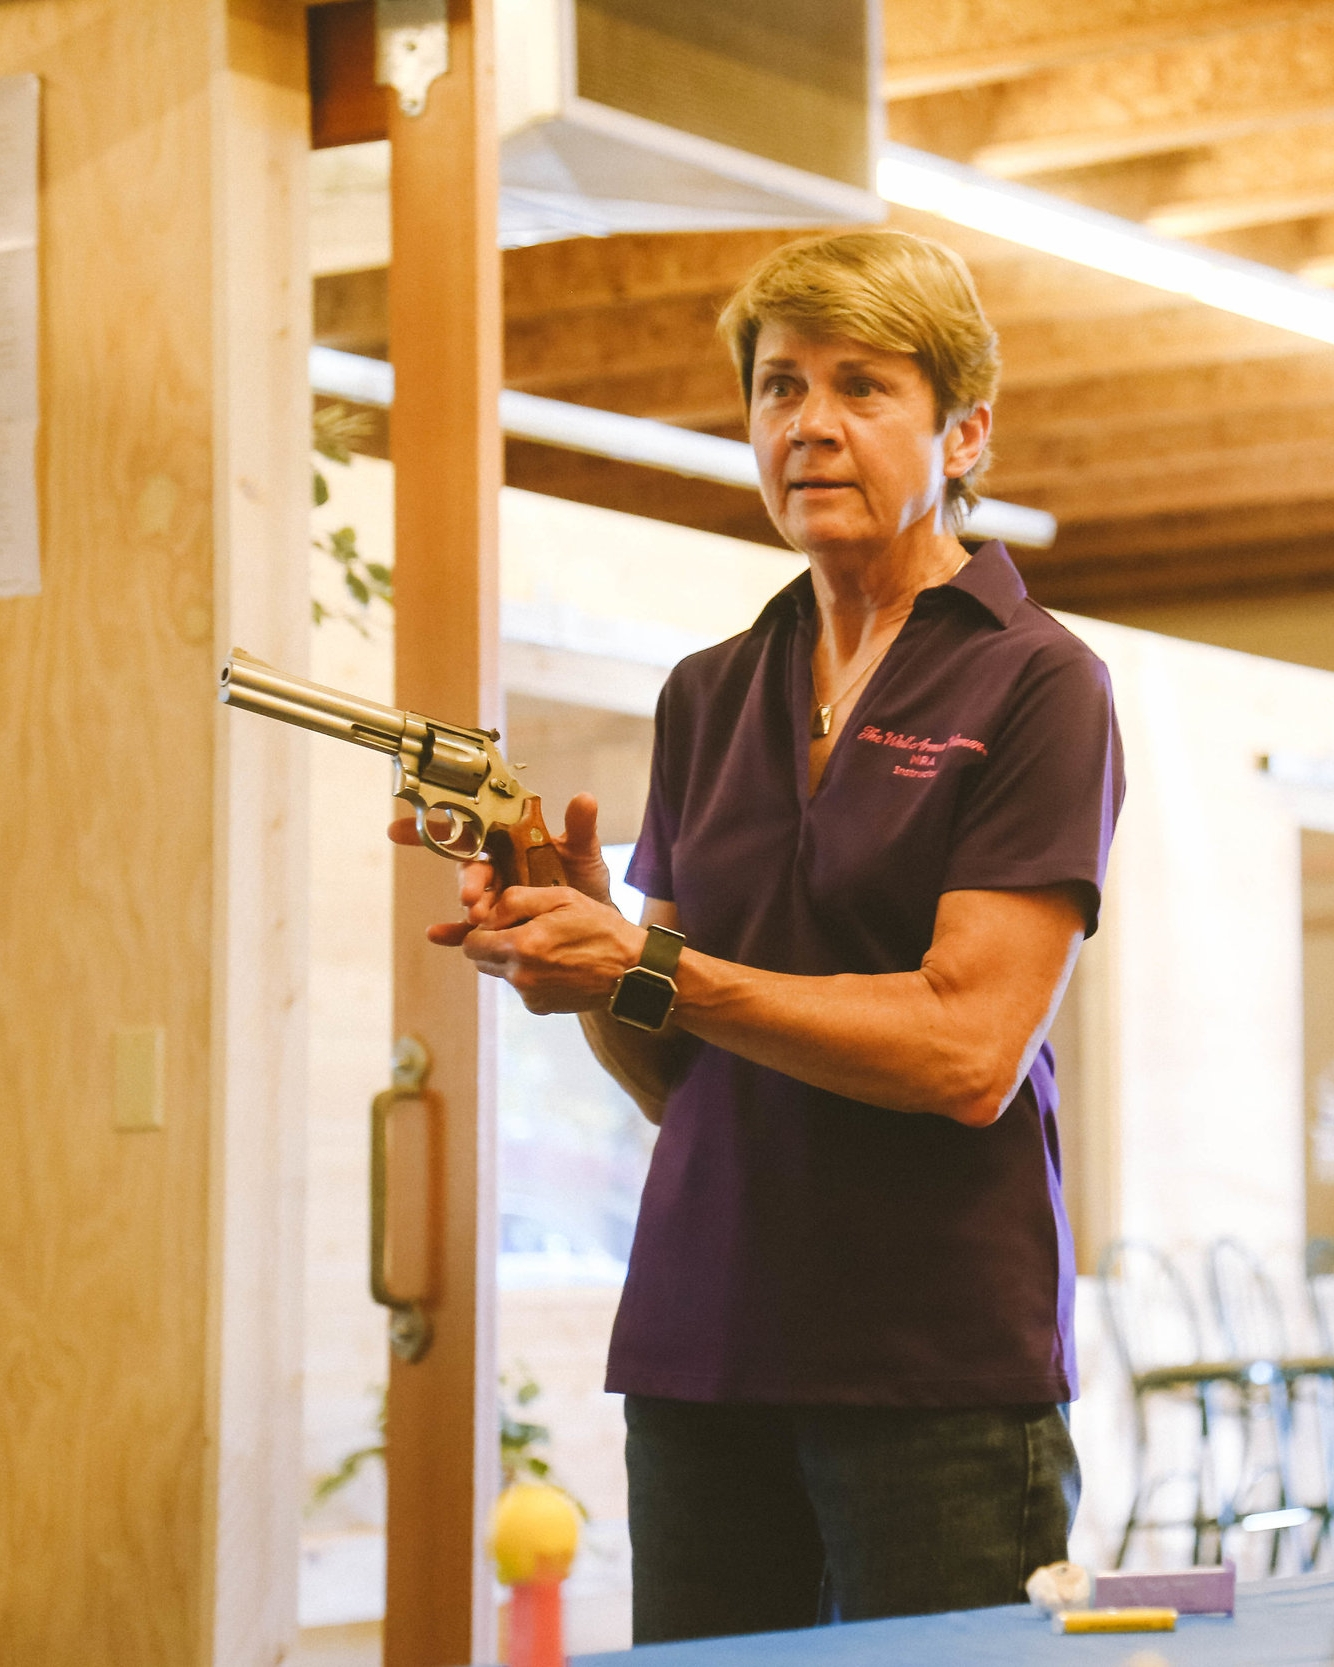 Carol Rozek provides firearm safety classes for those living in Eugene, Springfield, Pleasant Hill, Coburg, Creswell, Junction City, Harrisburg and Cottage Grove.